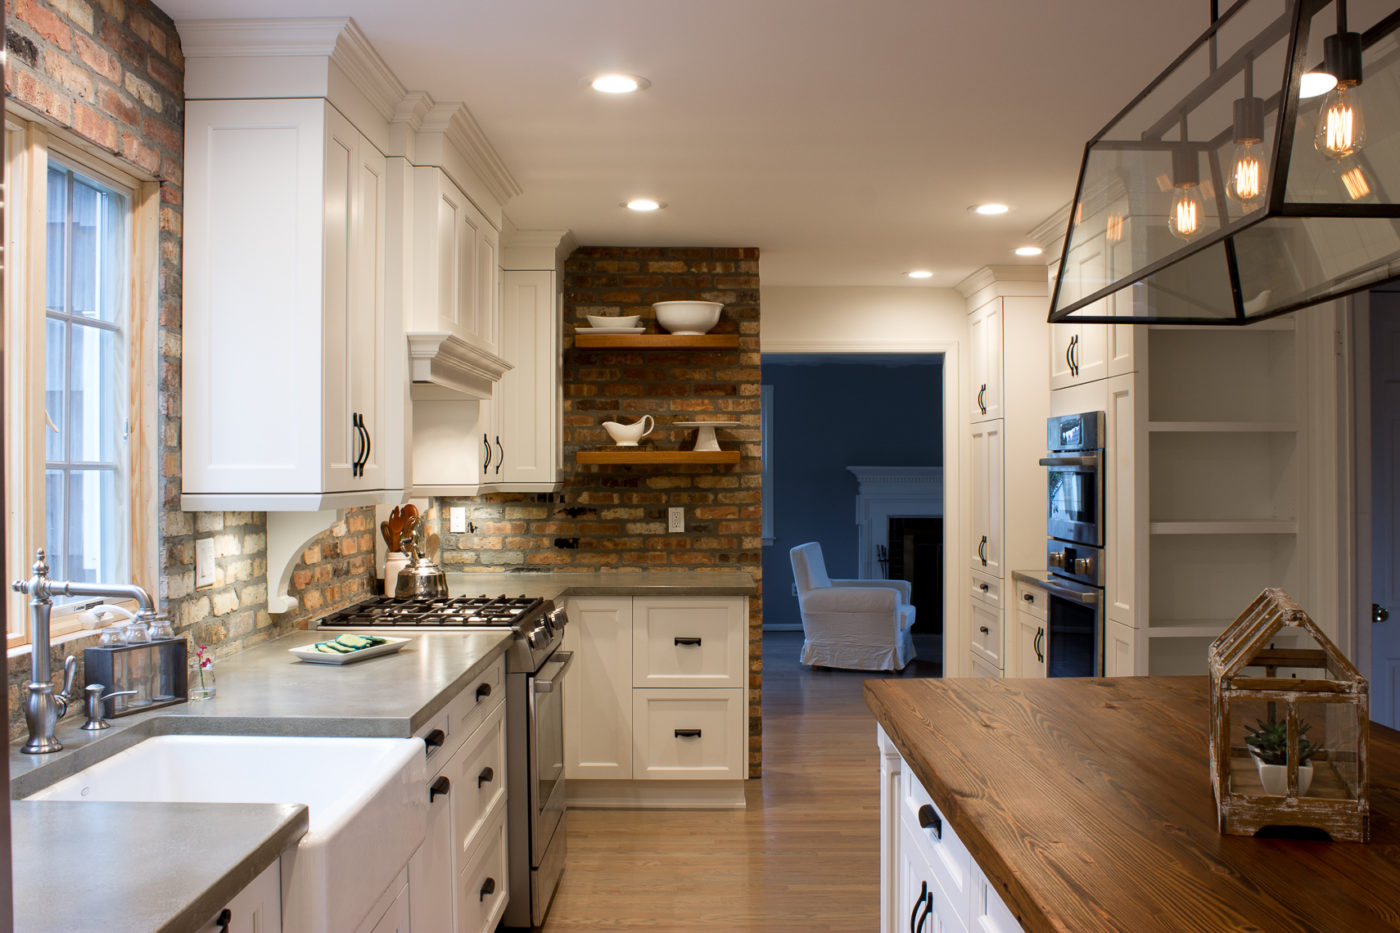 Here is a general how-to on building a green kitchen